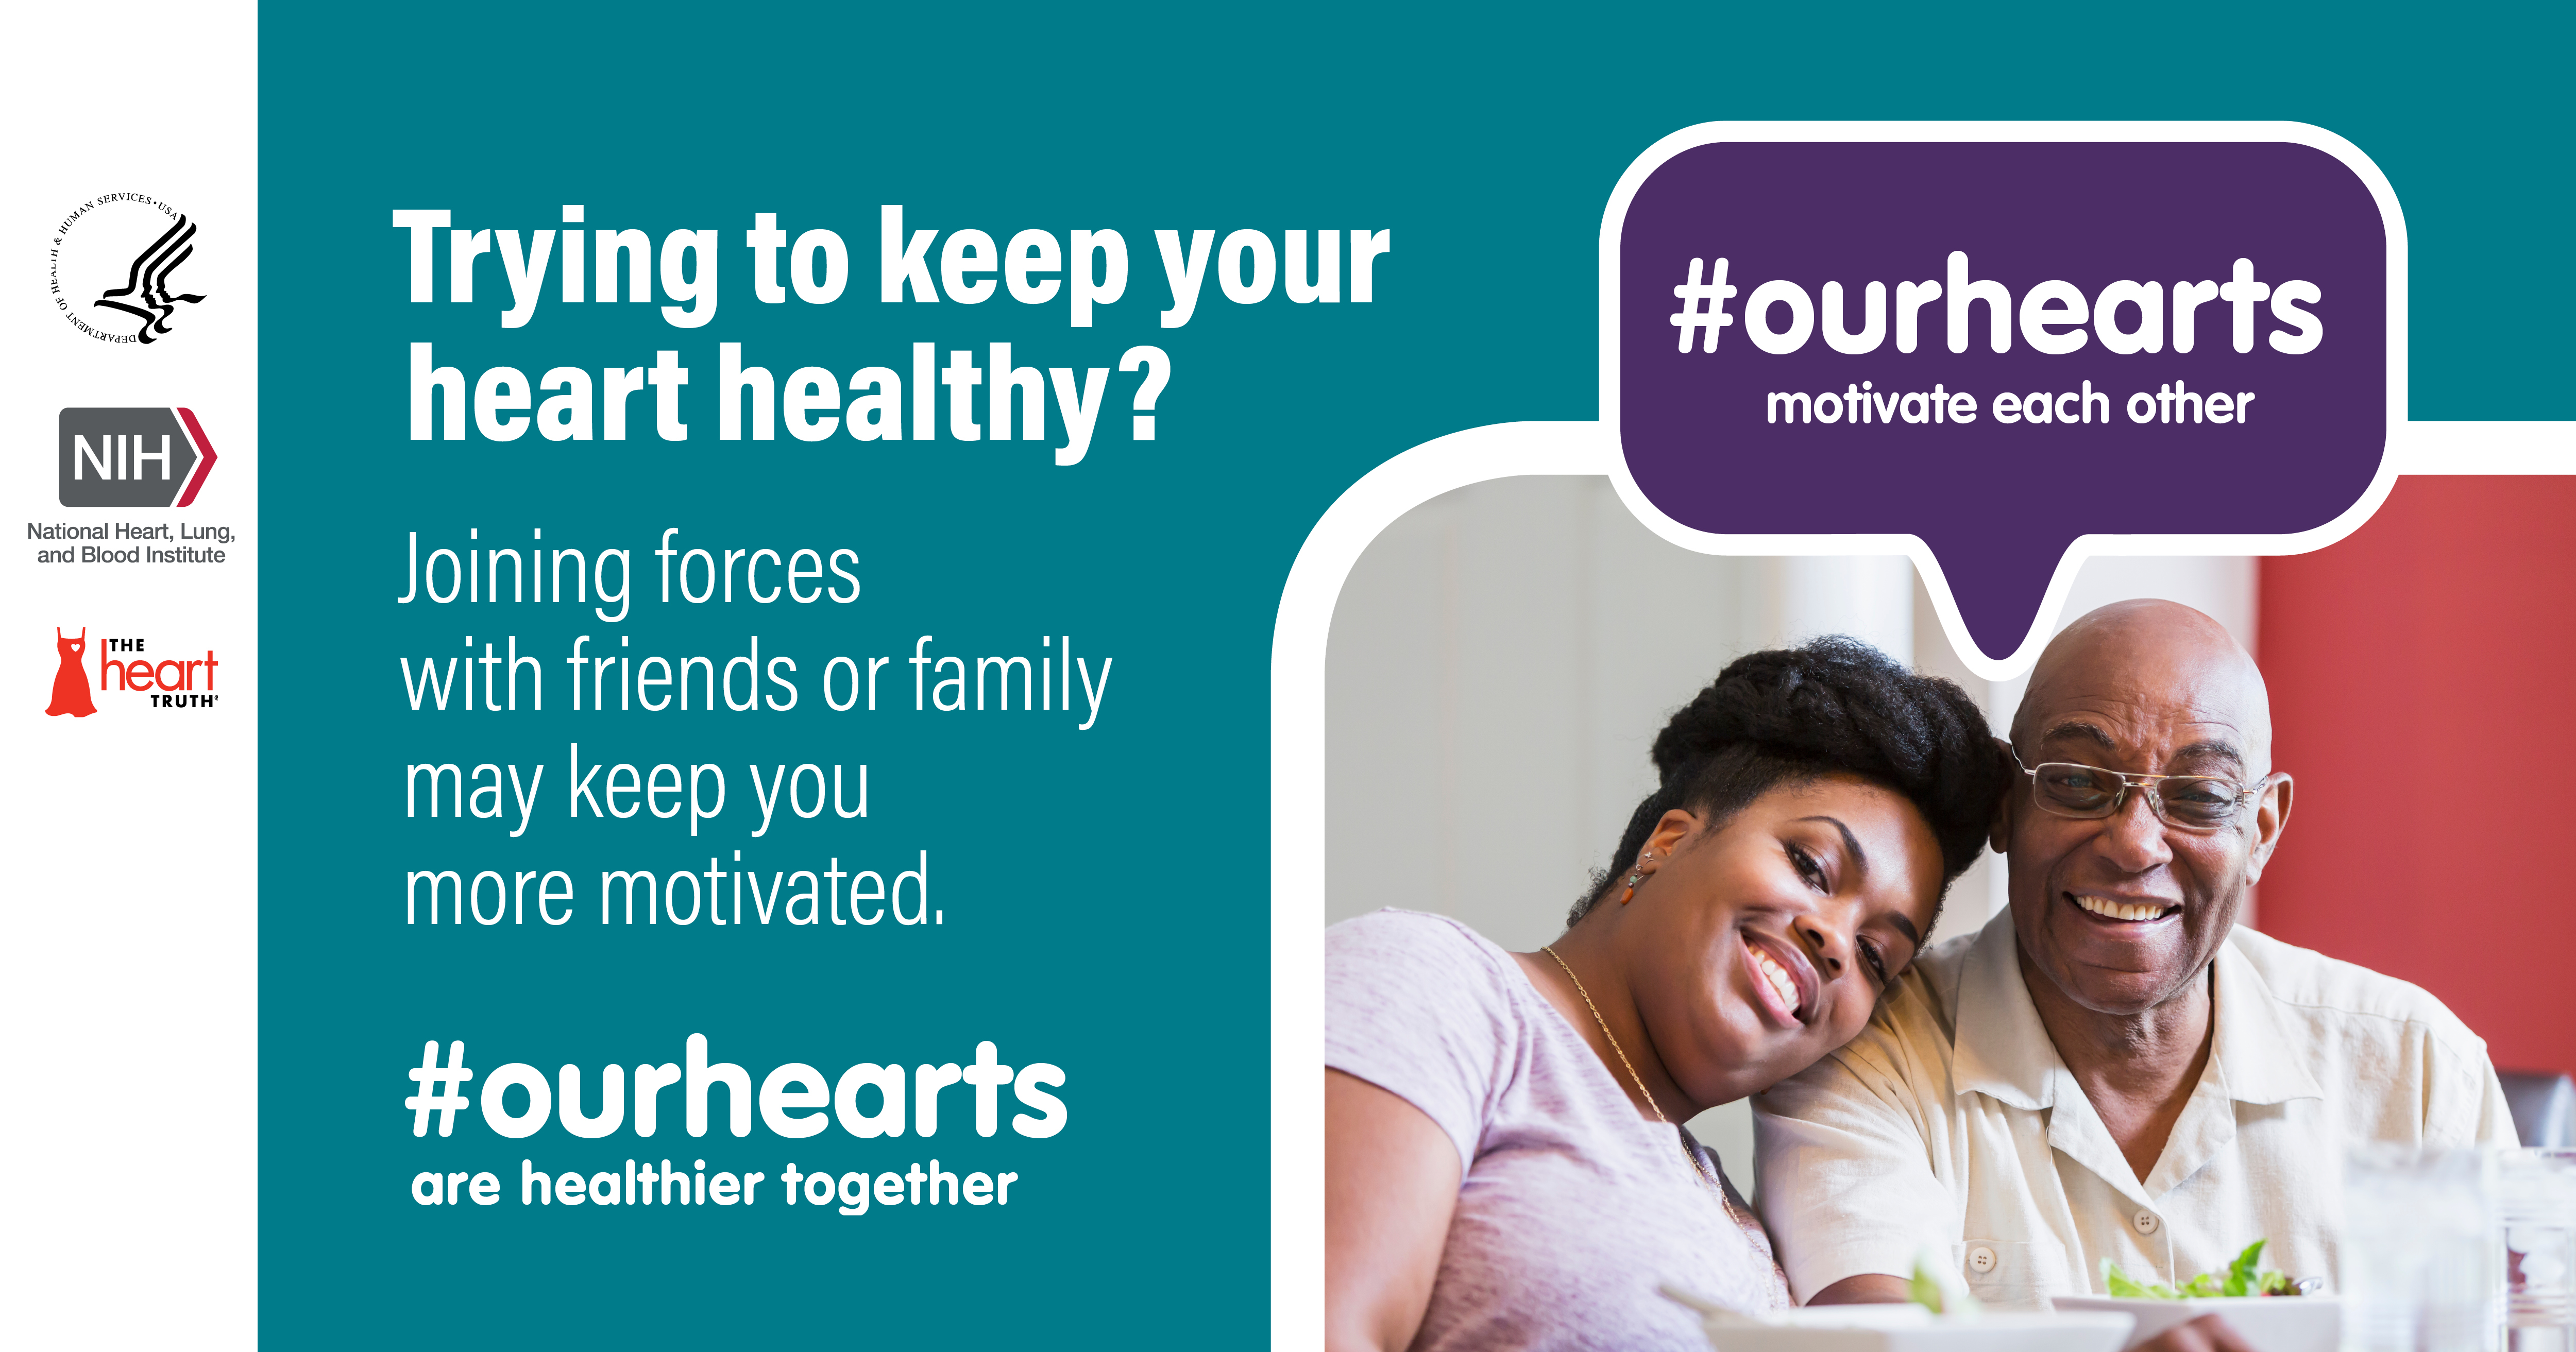 Social media infocard with tips for heart-healthy living: Joining forces with friends or family may keep you more motivated #ourhearts